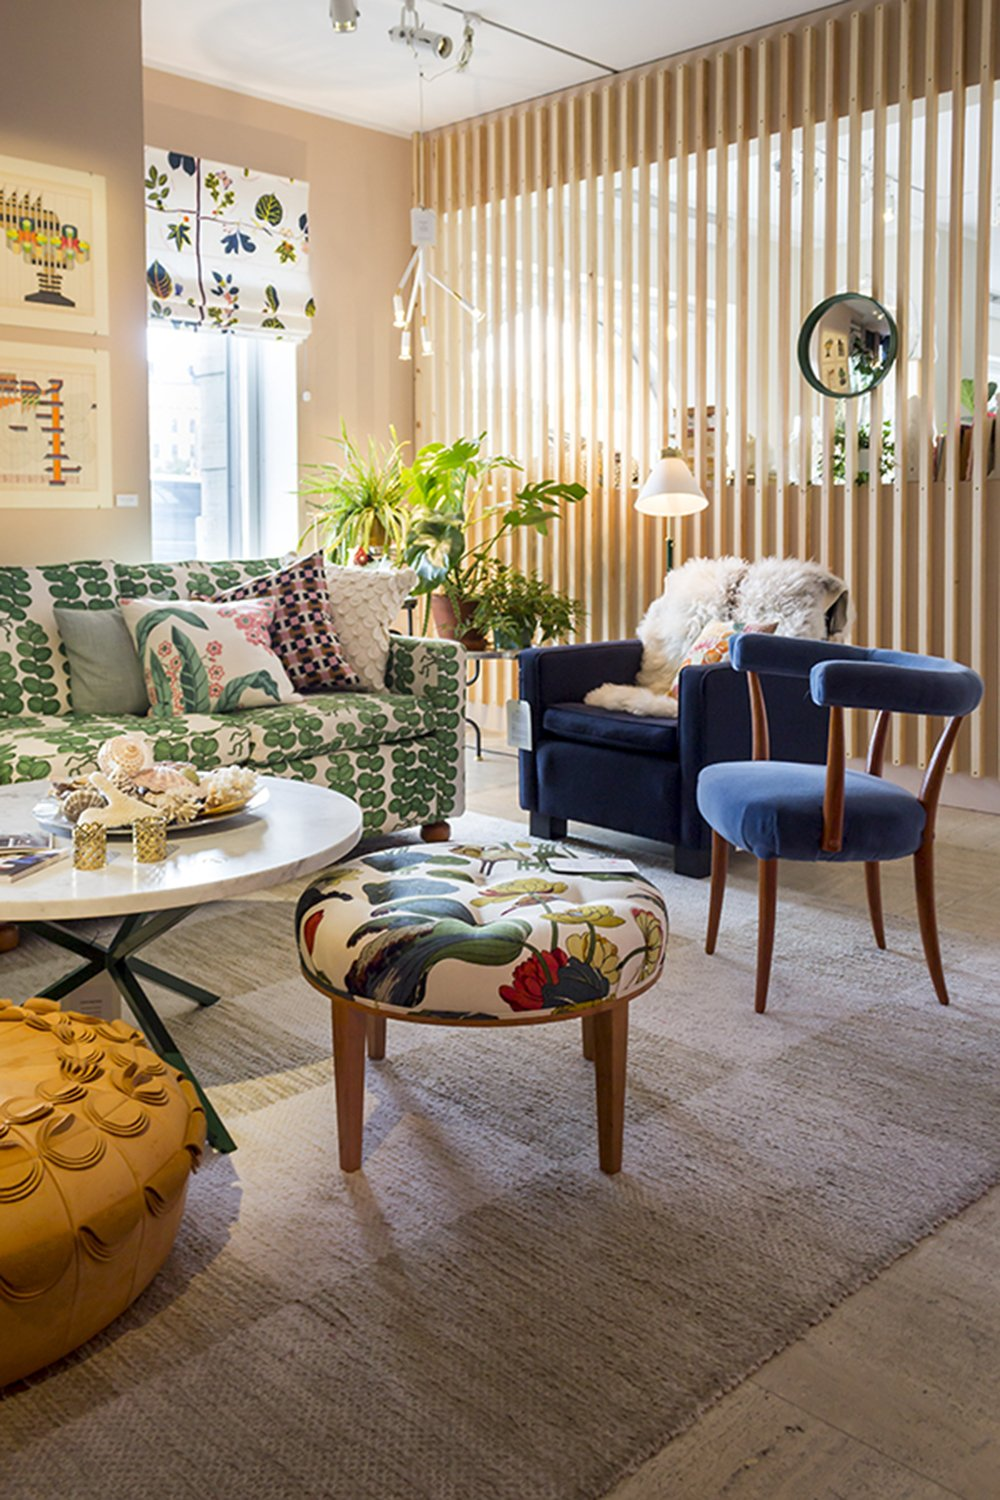 Svenskt Tenn in Stockholm /// More pictures on Interiorator.com